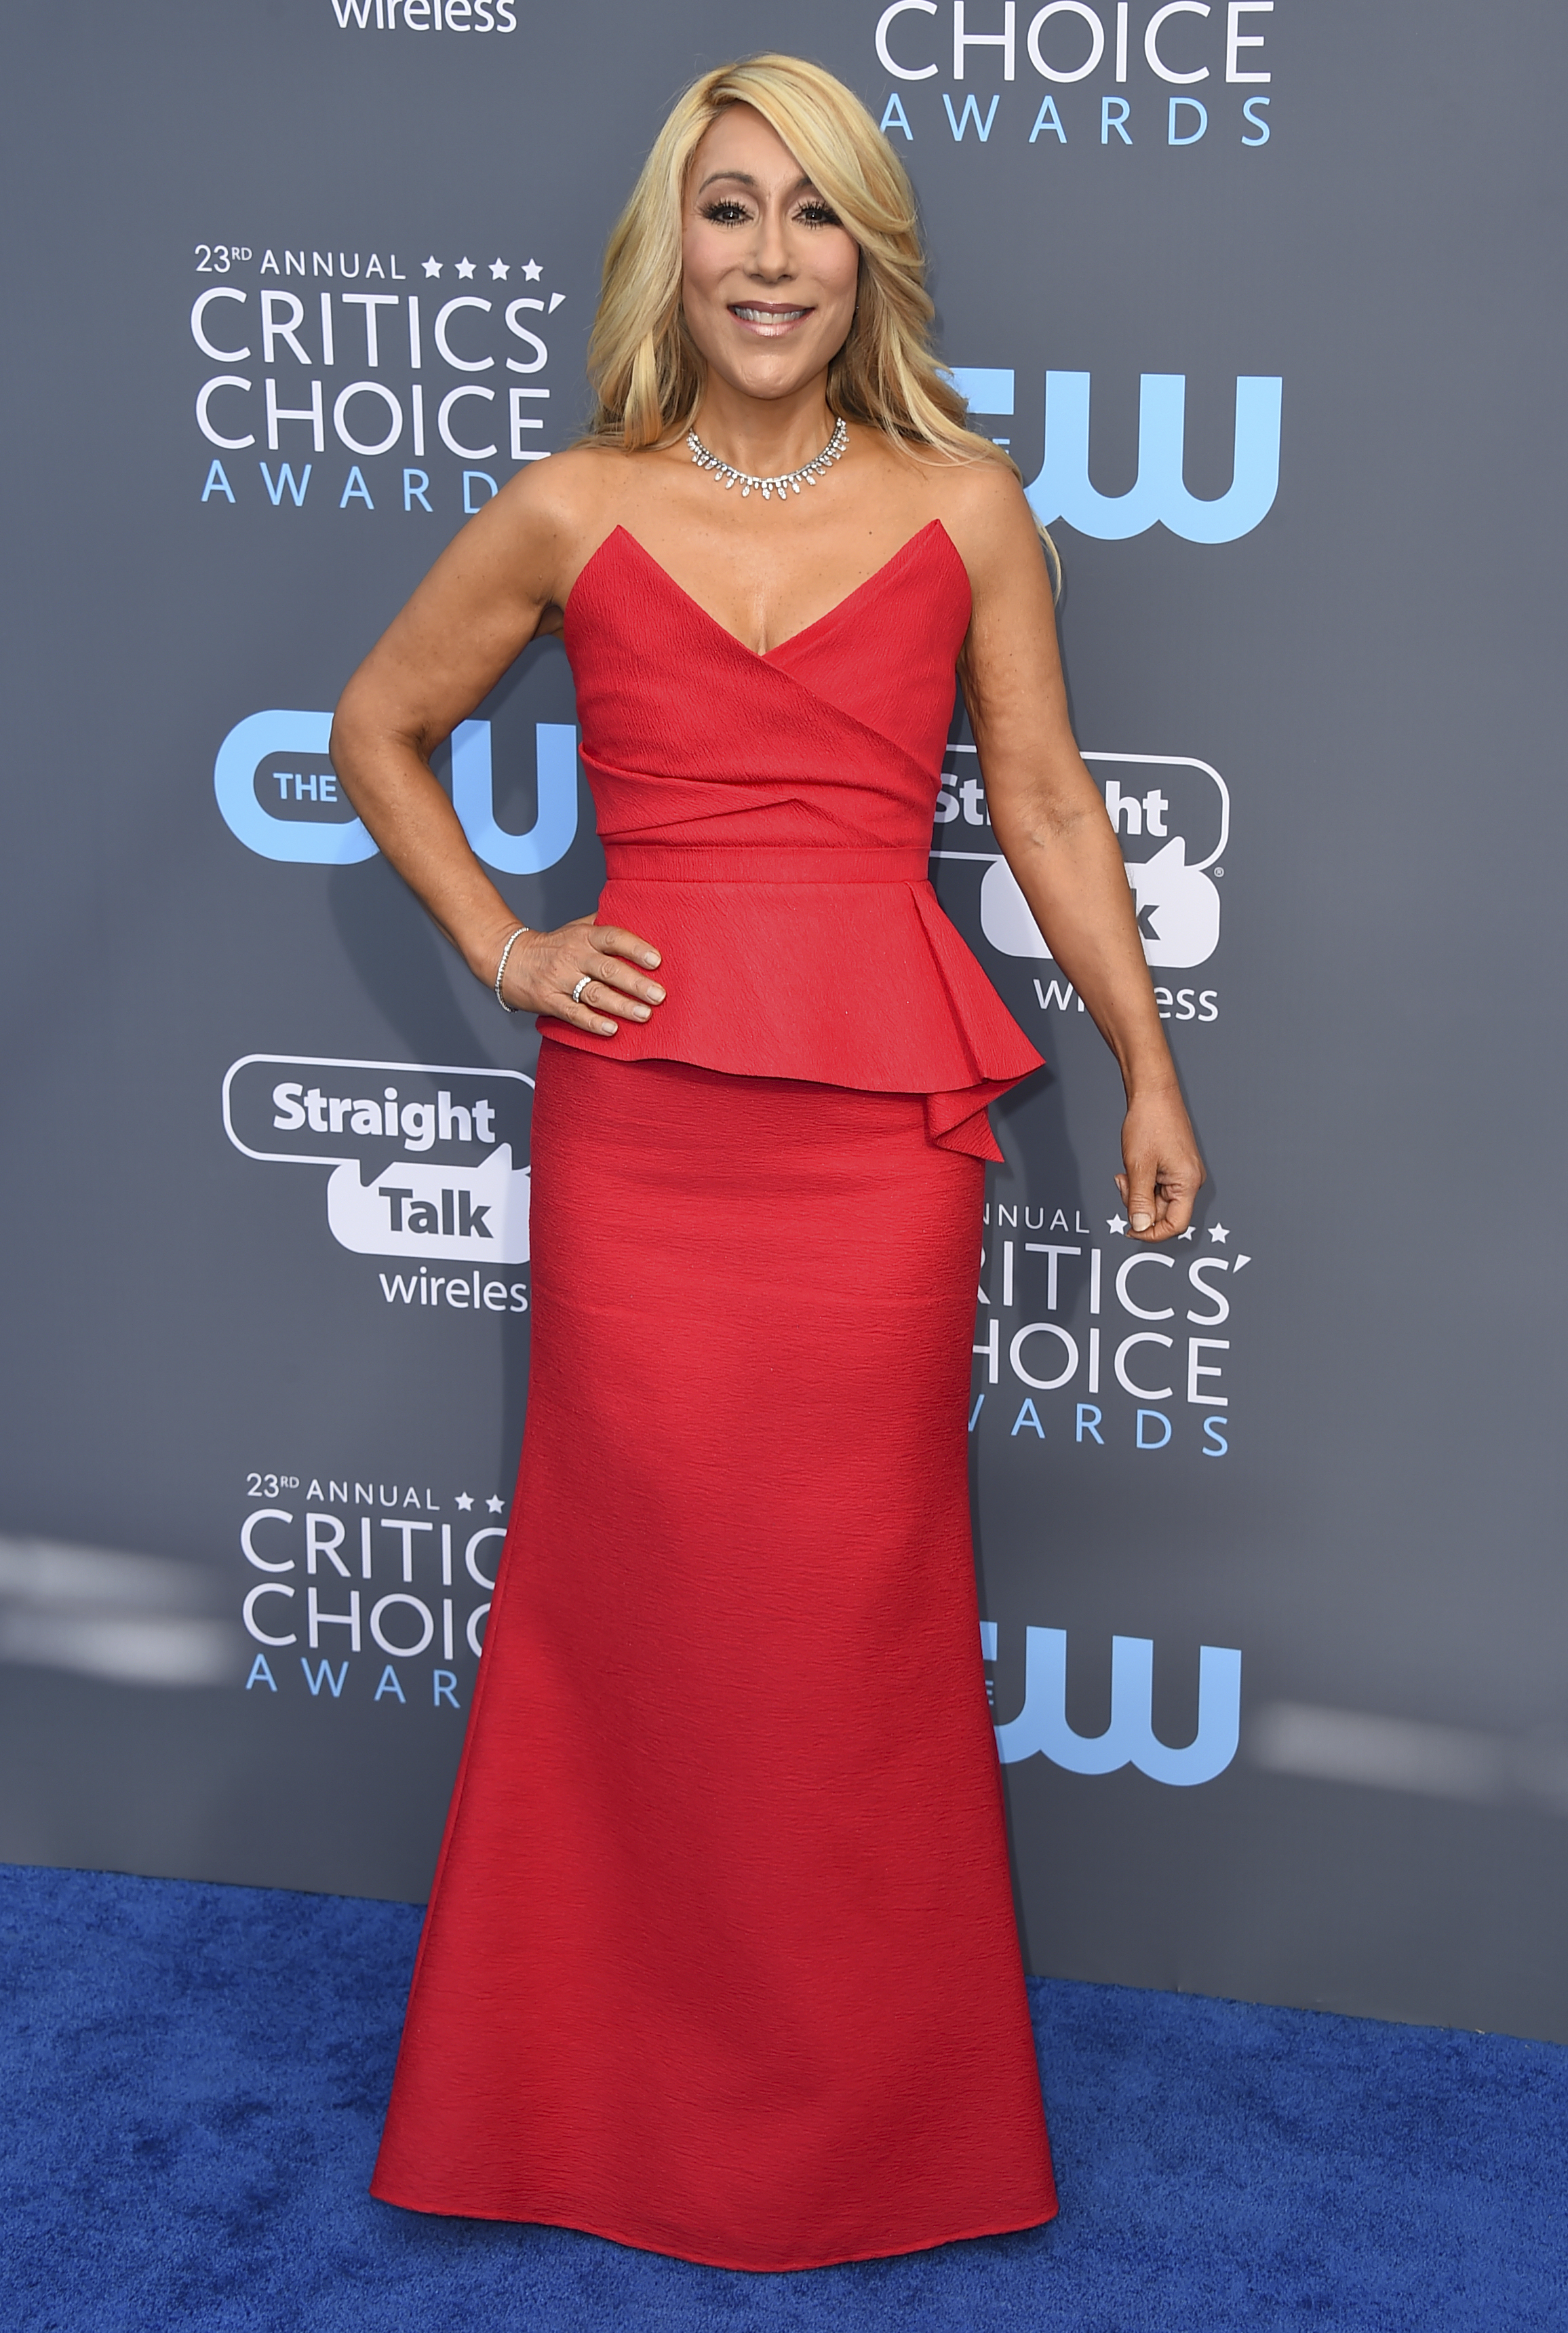 <div class='meta'><div class='origin-logo' data-origin='AP'></div><span class='caption-text' data-credit='Jordan Strauss/Invision/AP'>Lori Greiner arrives at the 23rd annual Critics' Choice Awards at the Barker Hangar on Thursday, Jan. 11, 2018, in Santa Monica, Calif.</span></div>